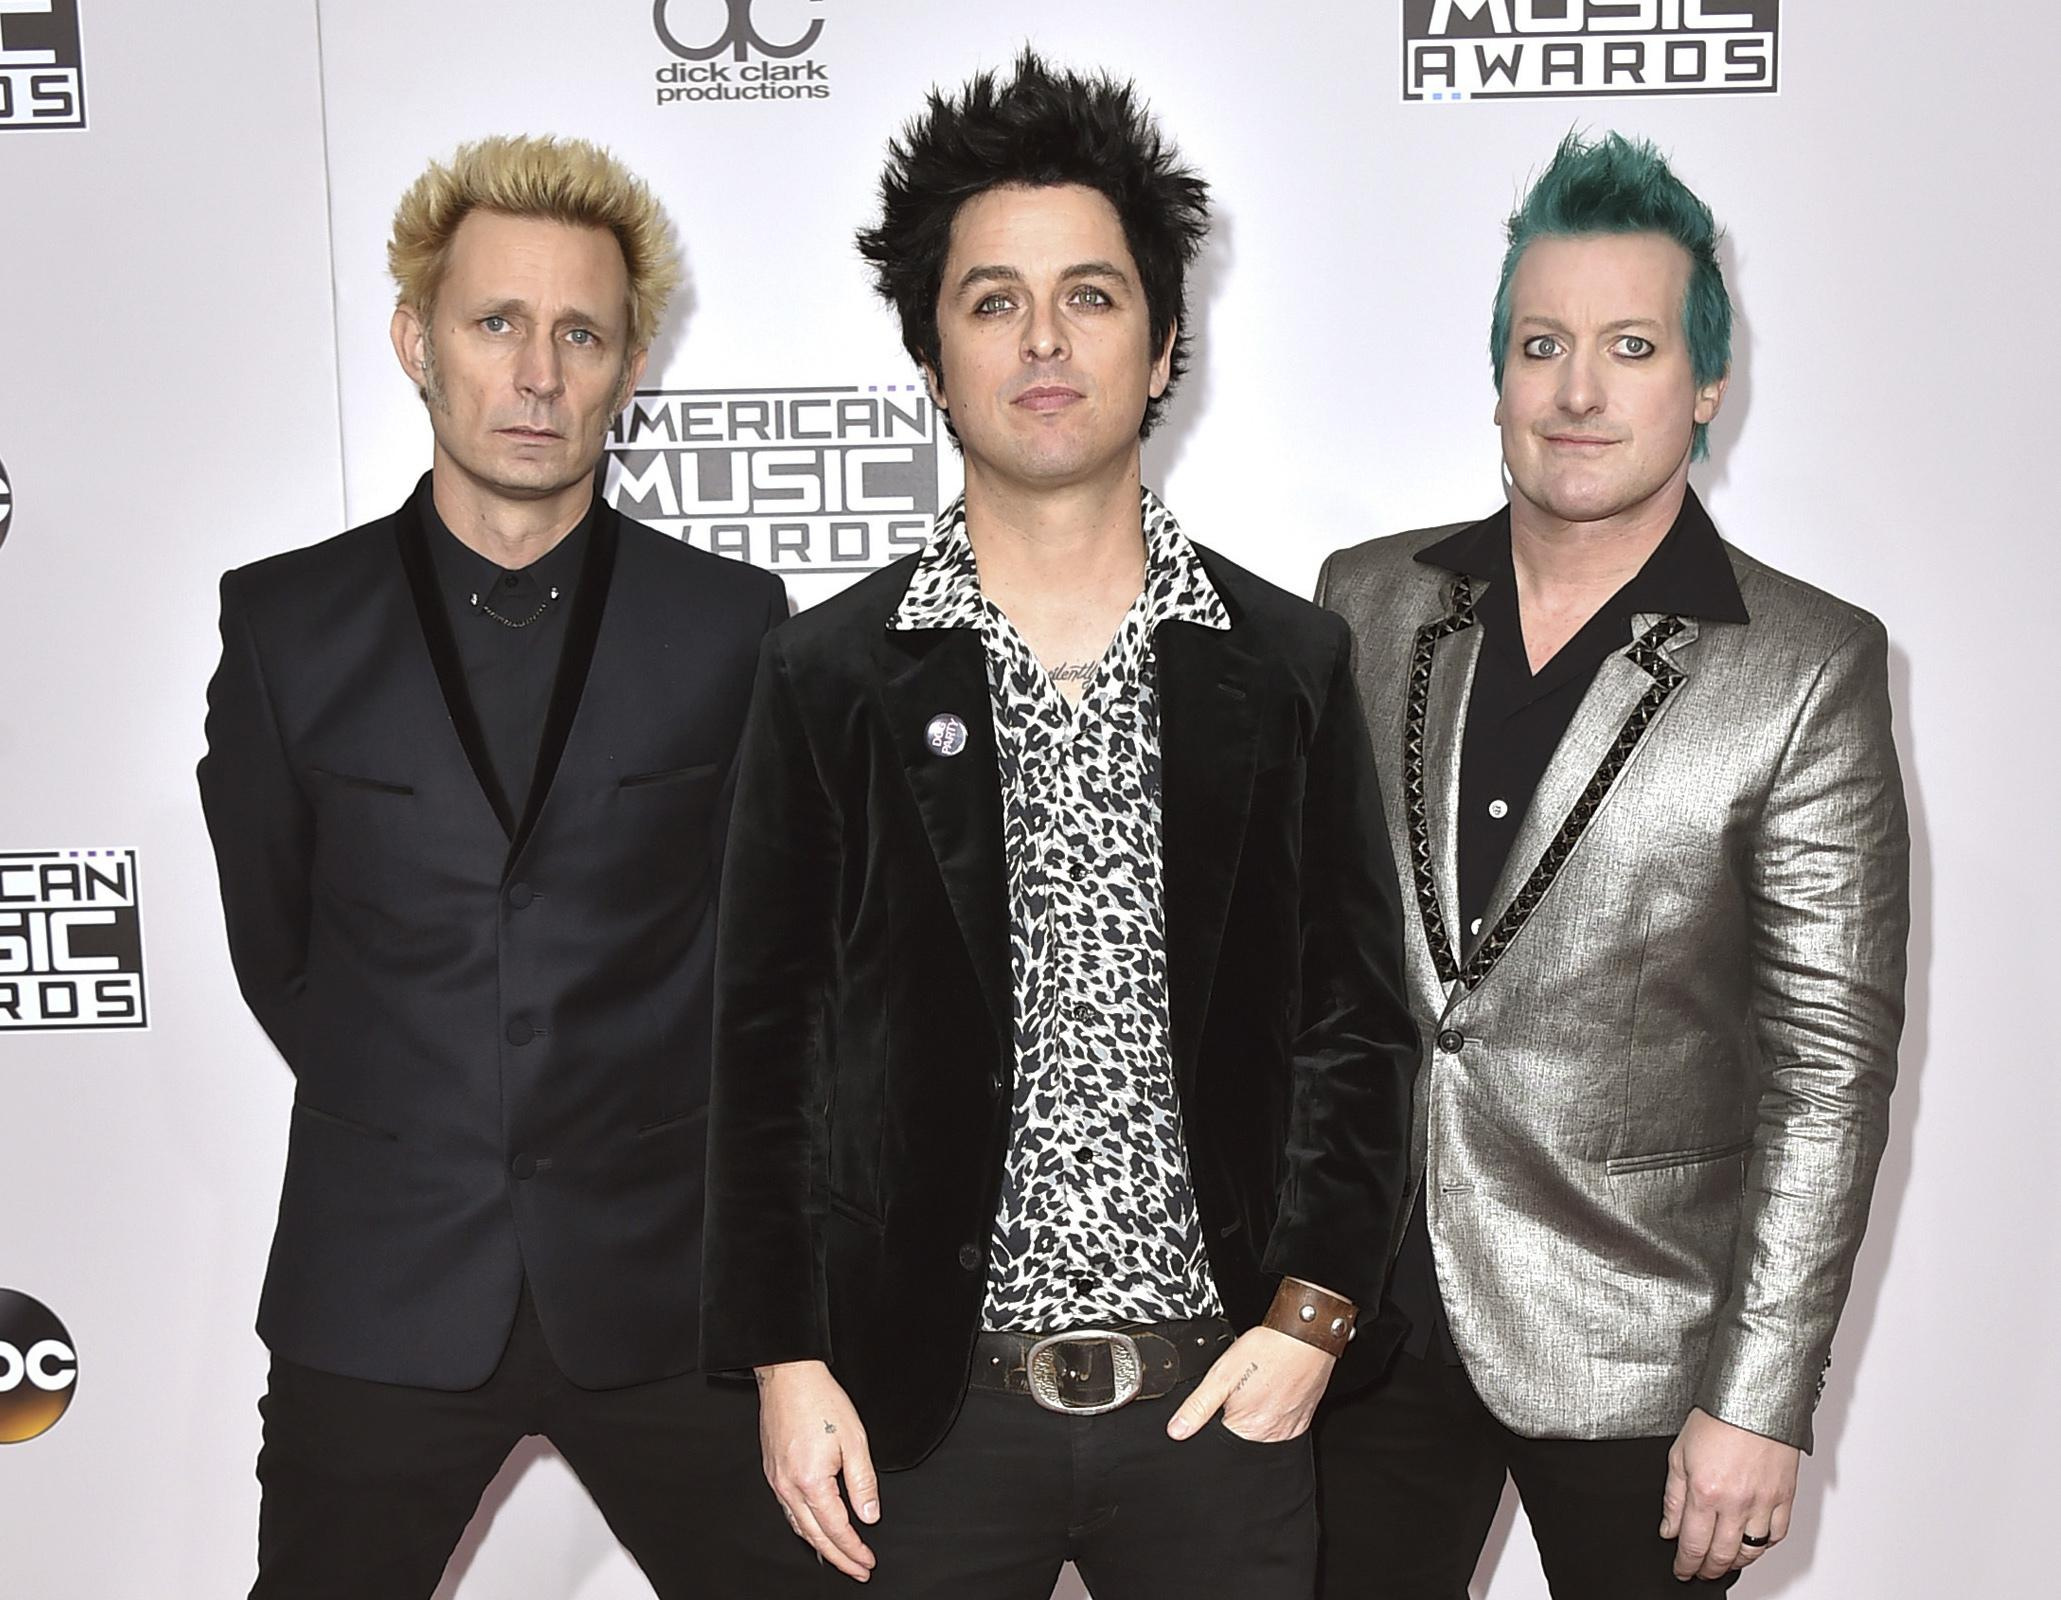 Green Day Releases Greatest Hits Album Spanning 30 Years The